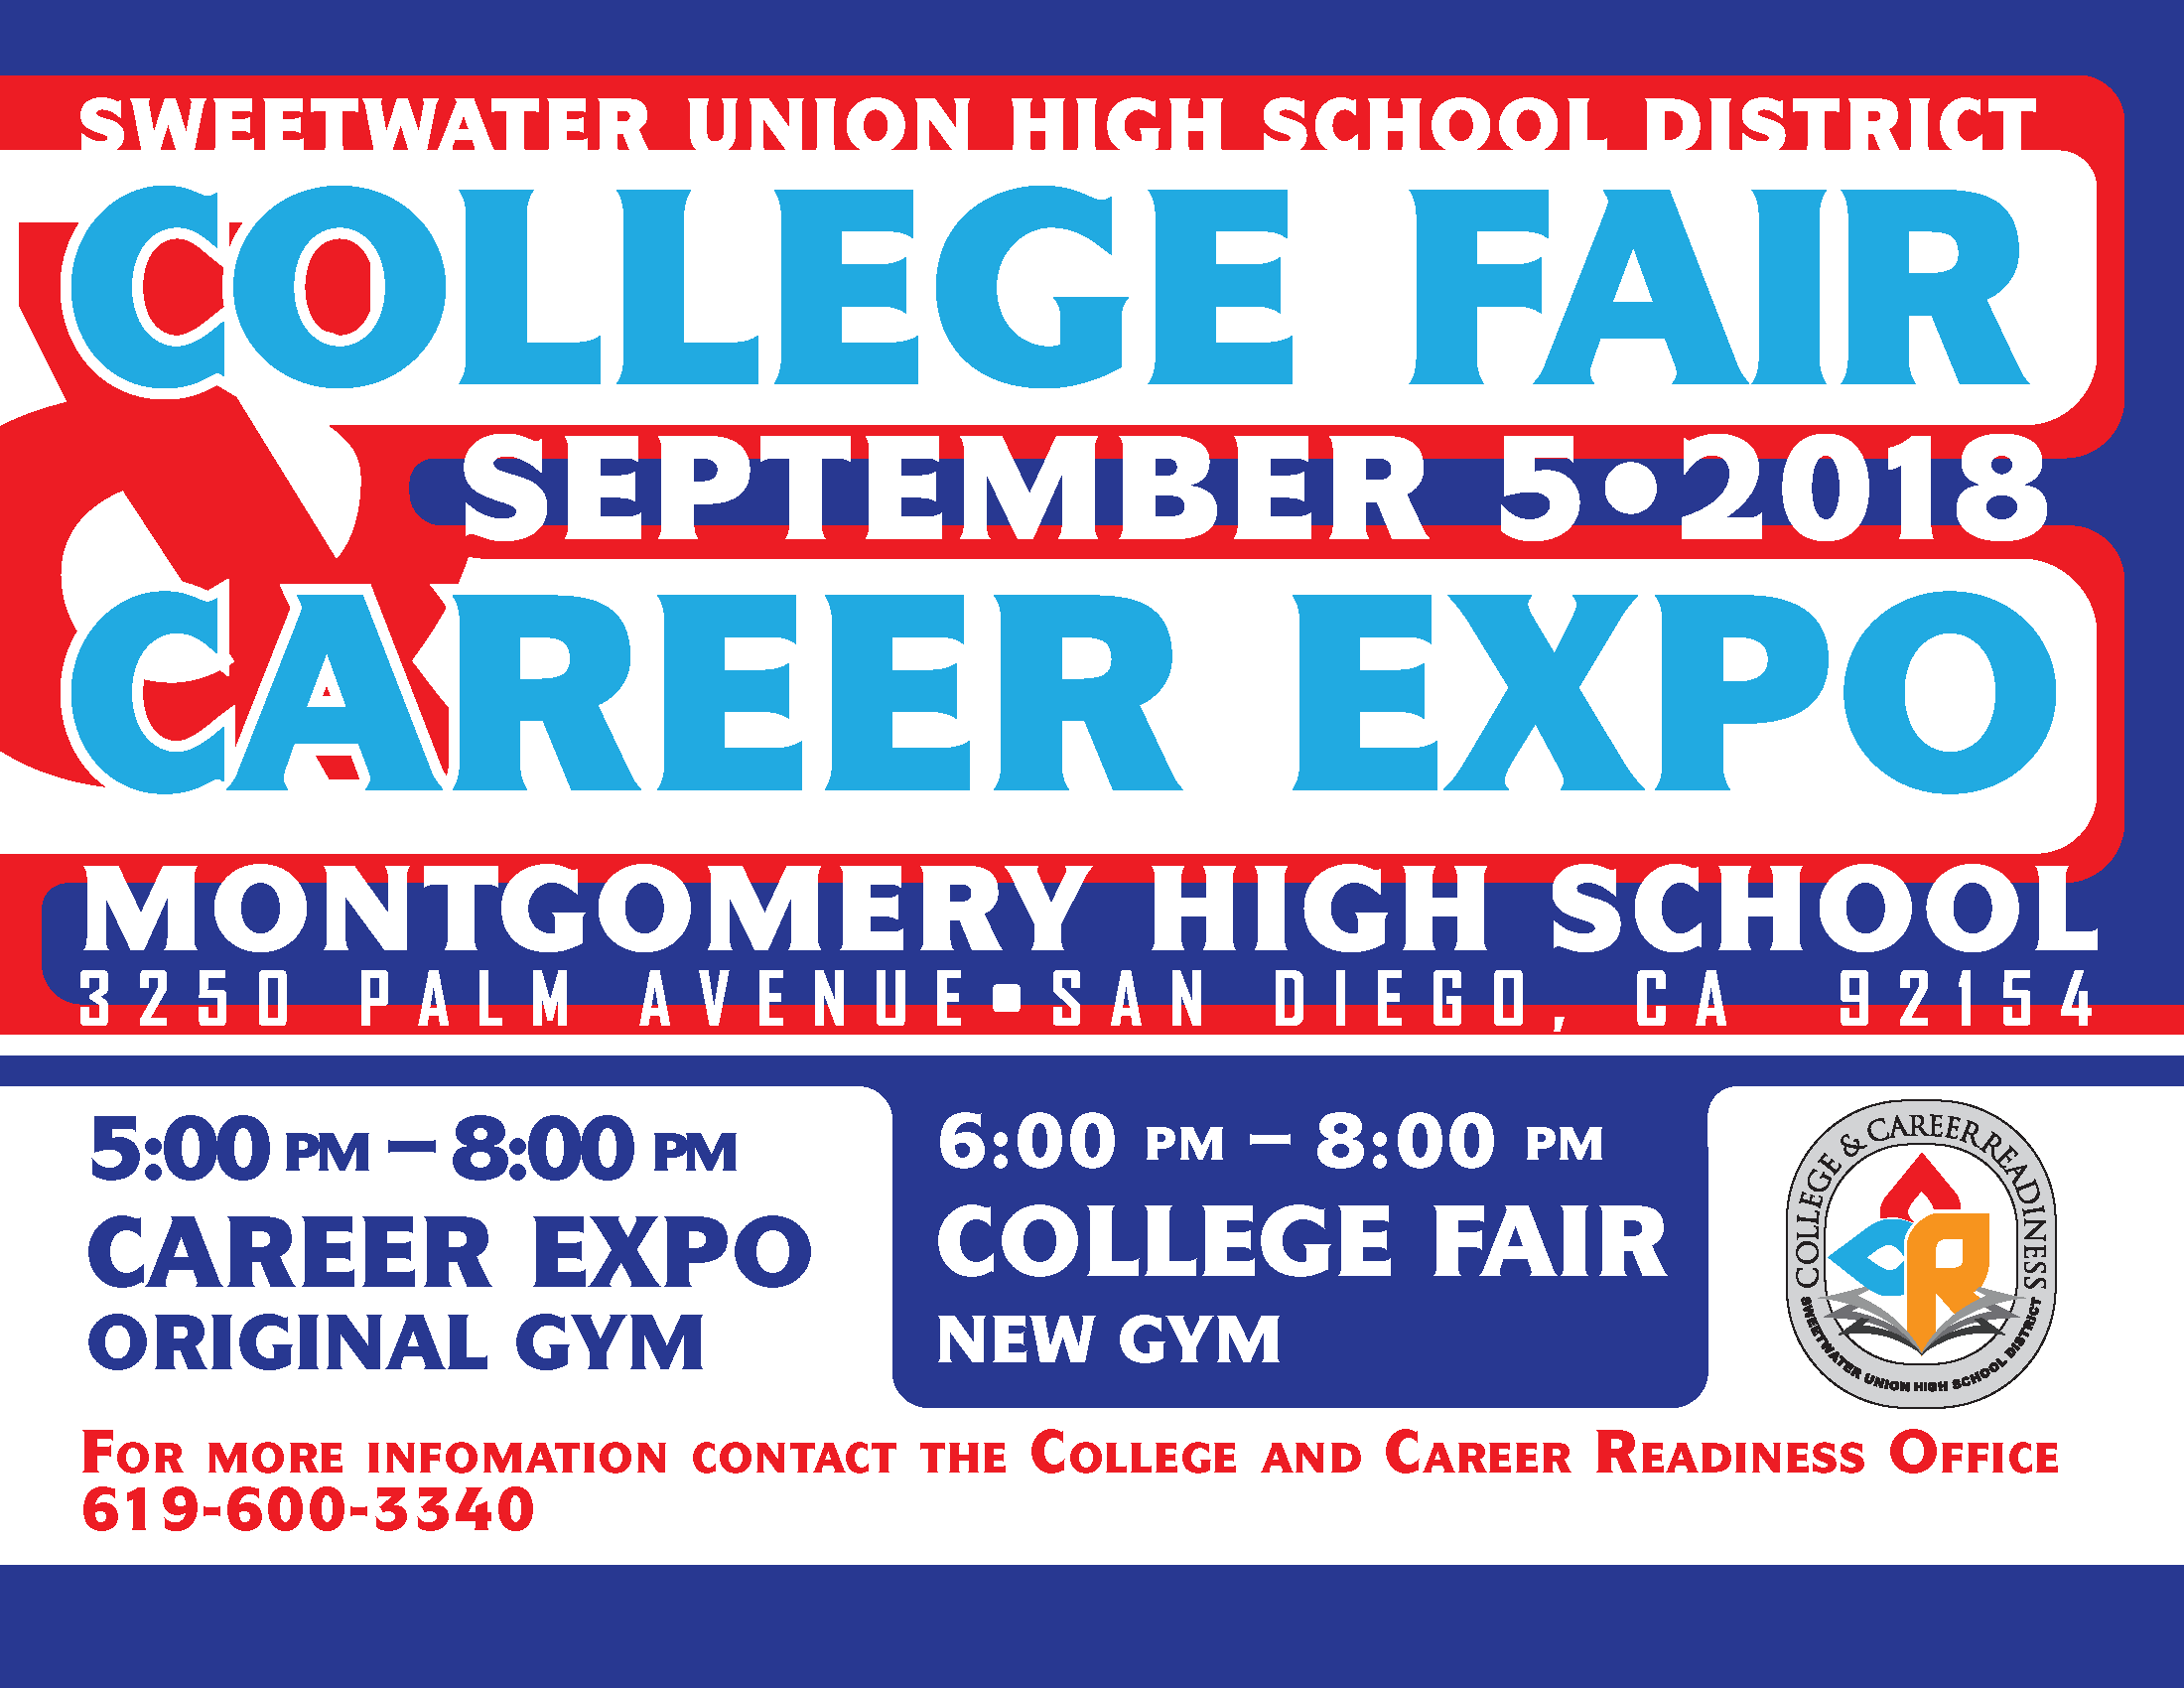 College Fair and Career Expo 2018 Flyer